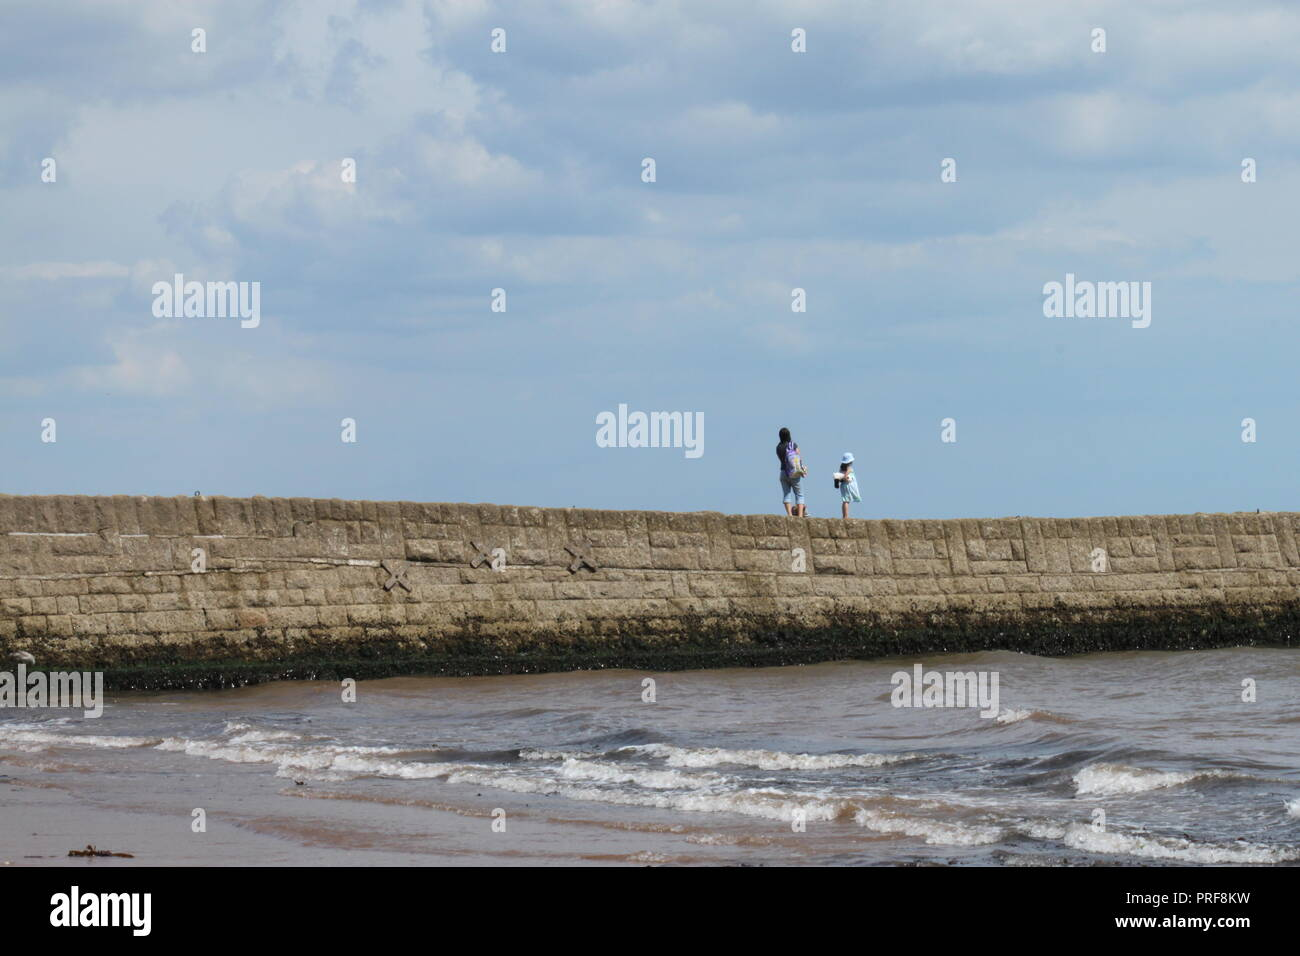 woman and girl standing on a pier at Dawlish, Devon. - Stock Image